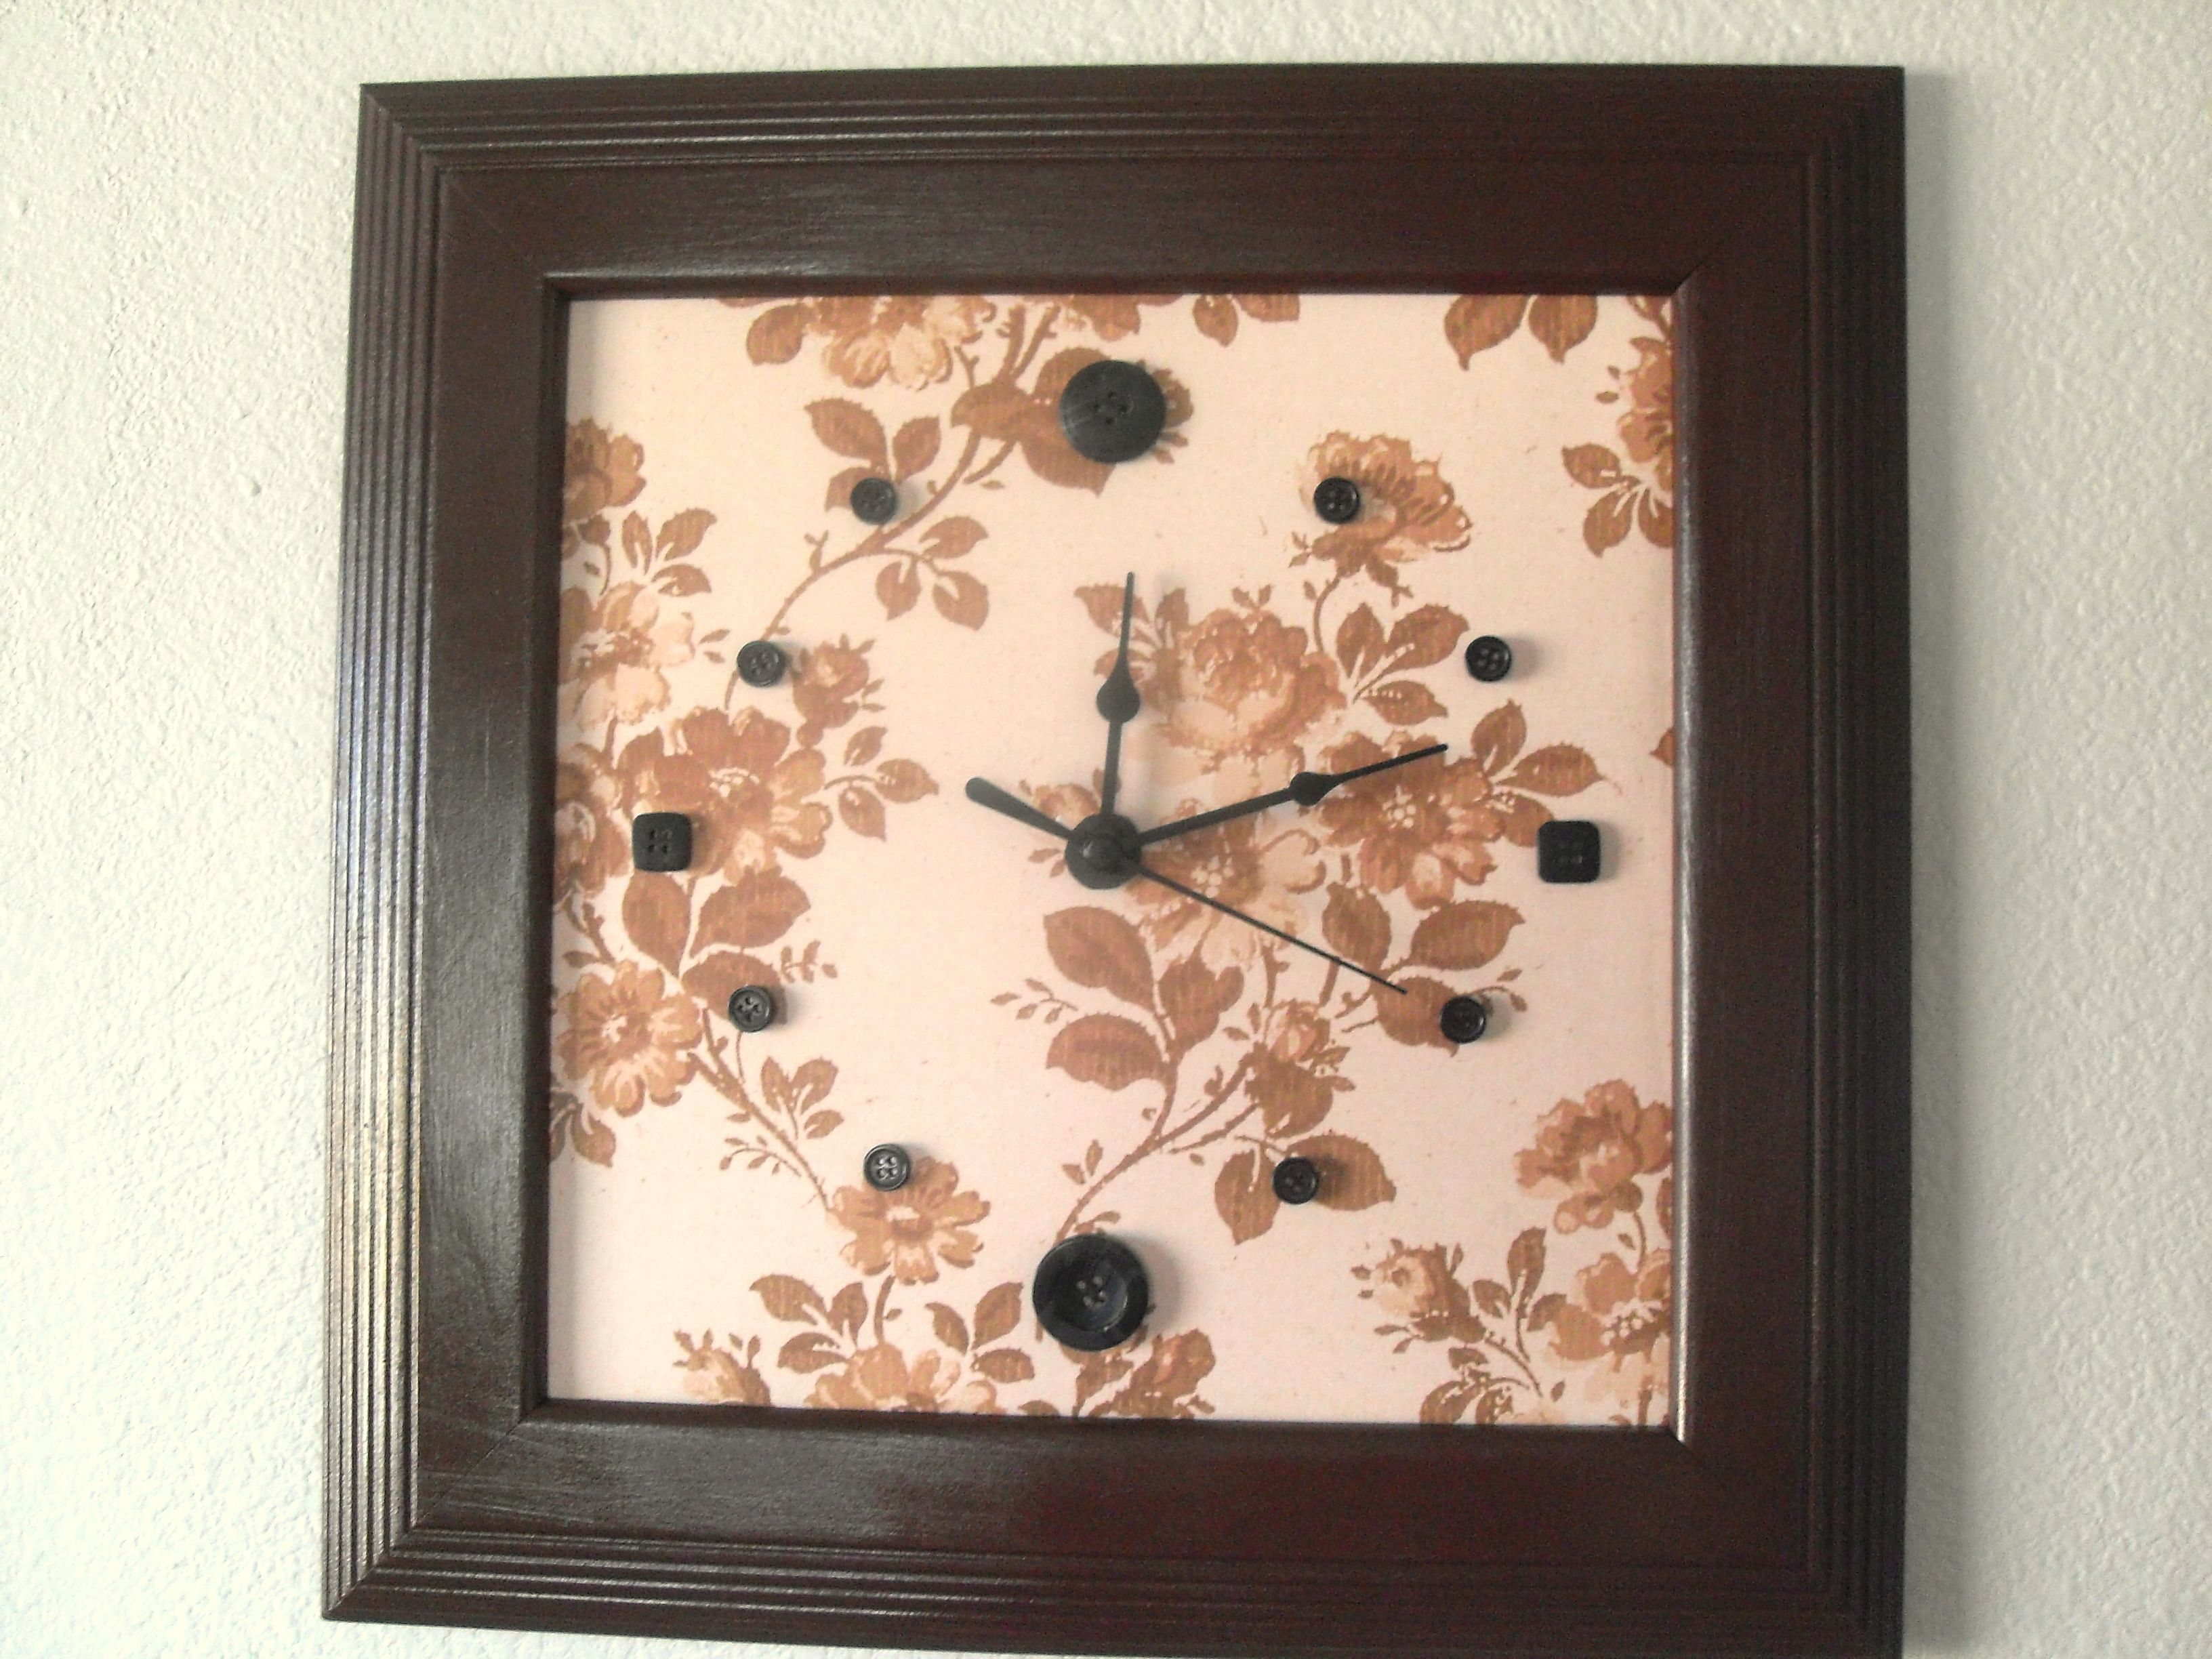 picture frame clock buttons | I made it | Pinterest | Knöpfe, Bilder ...